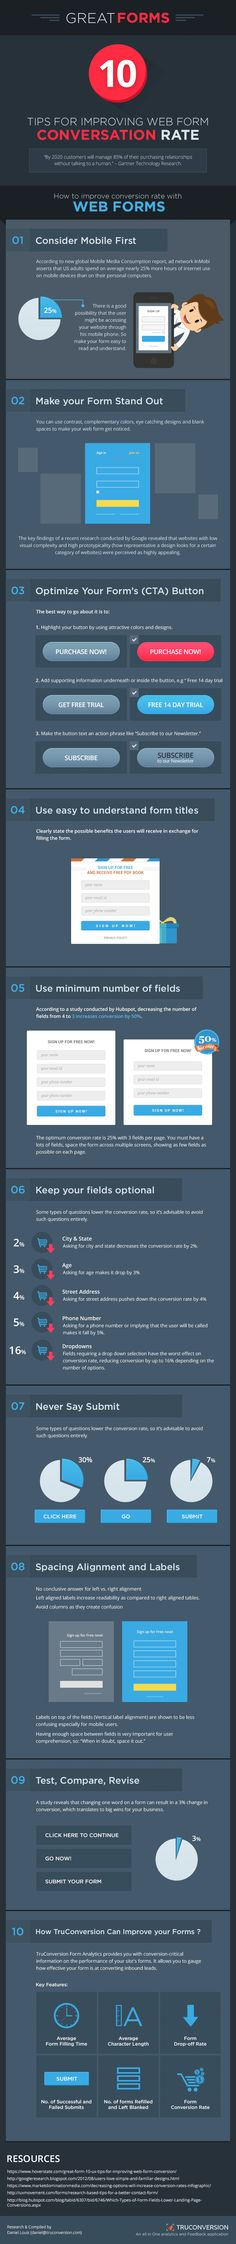 10 Tips for Increasing Web Form Conversion Rates